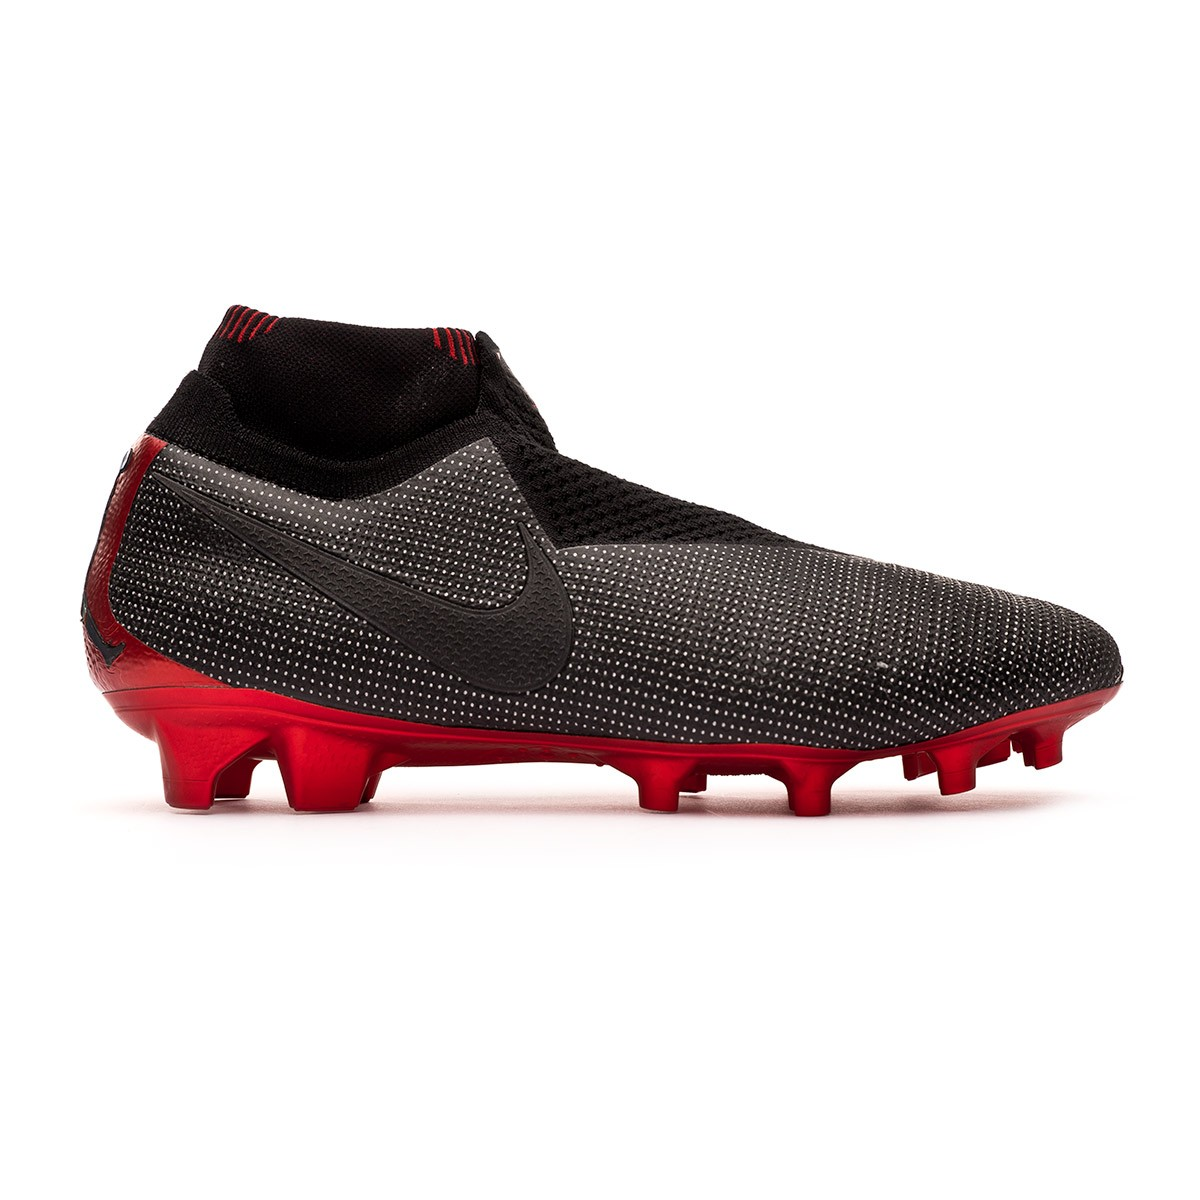 7e97adaad80c48 Football Boots Nike Phantom Vision Elite DF SE Jordan x PSG FG Black -  Football store Fútbol Emotion